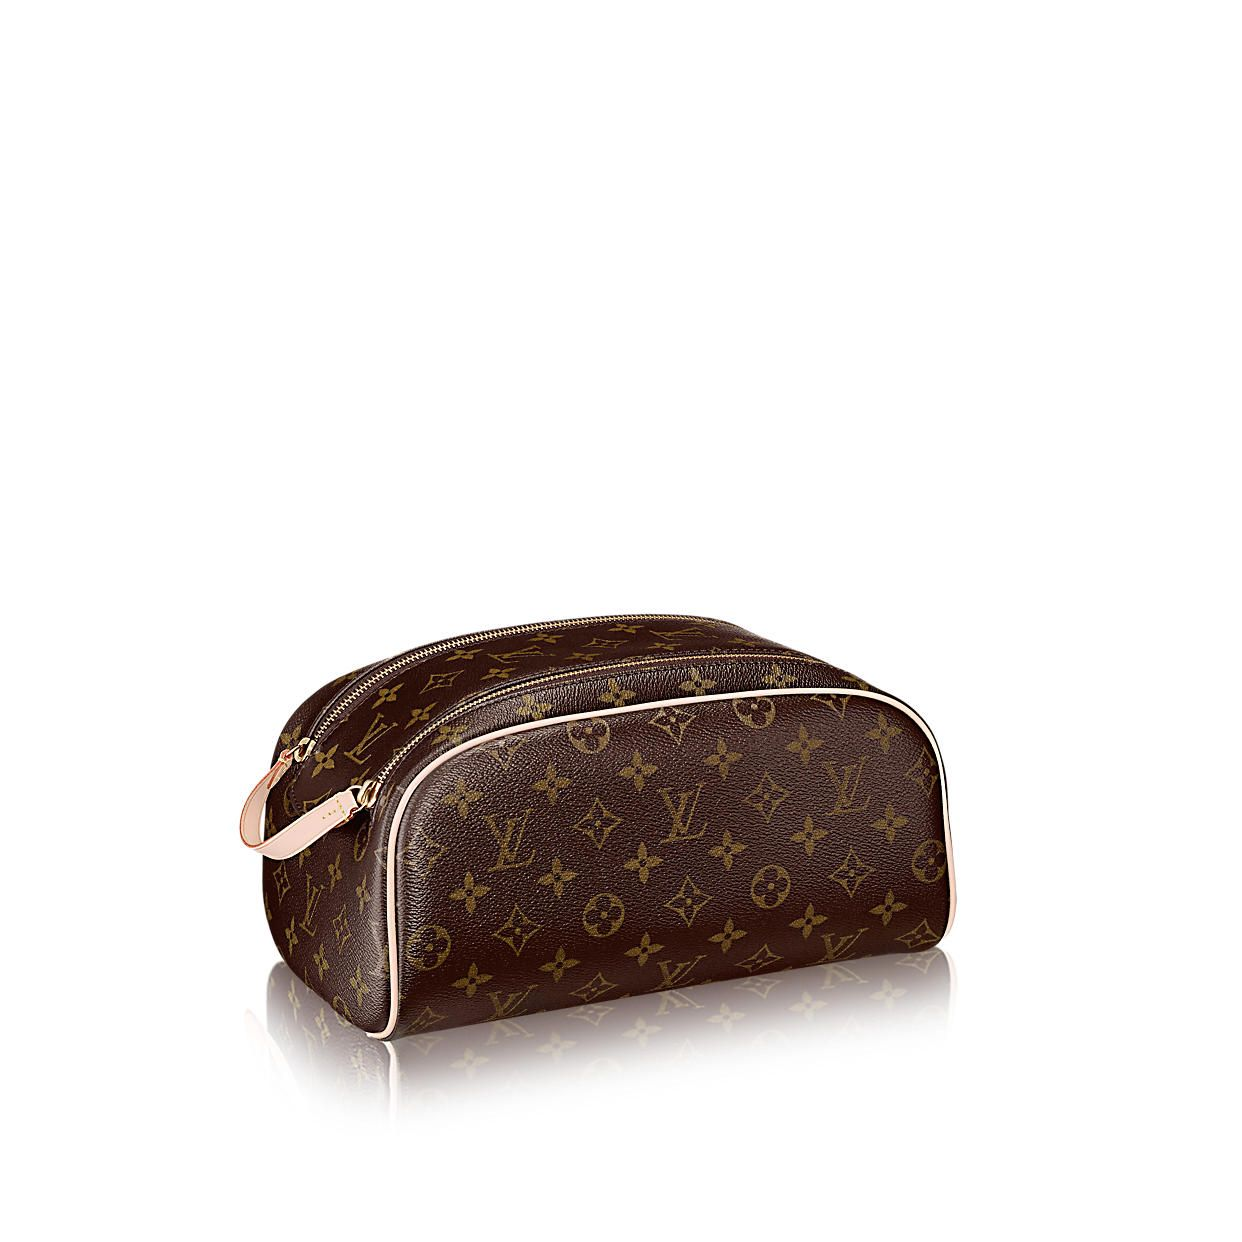 7b65aee2162 King size Toiletry Bag | Confessions of a Shopaholic | Louis vuitton ...